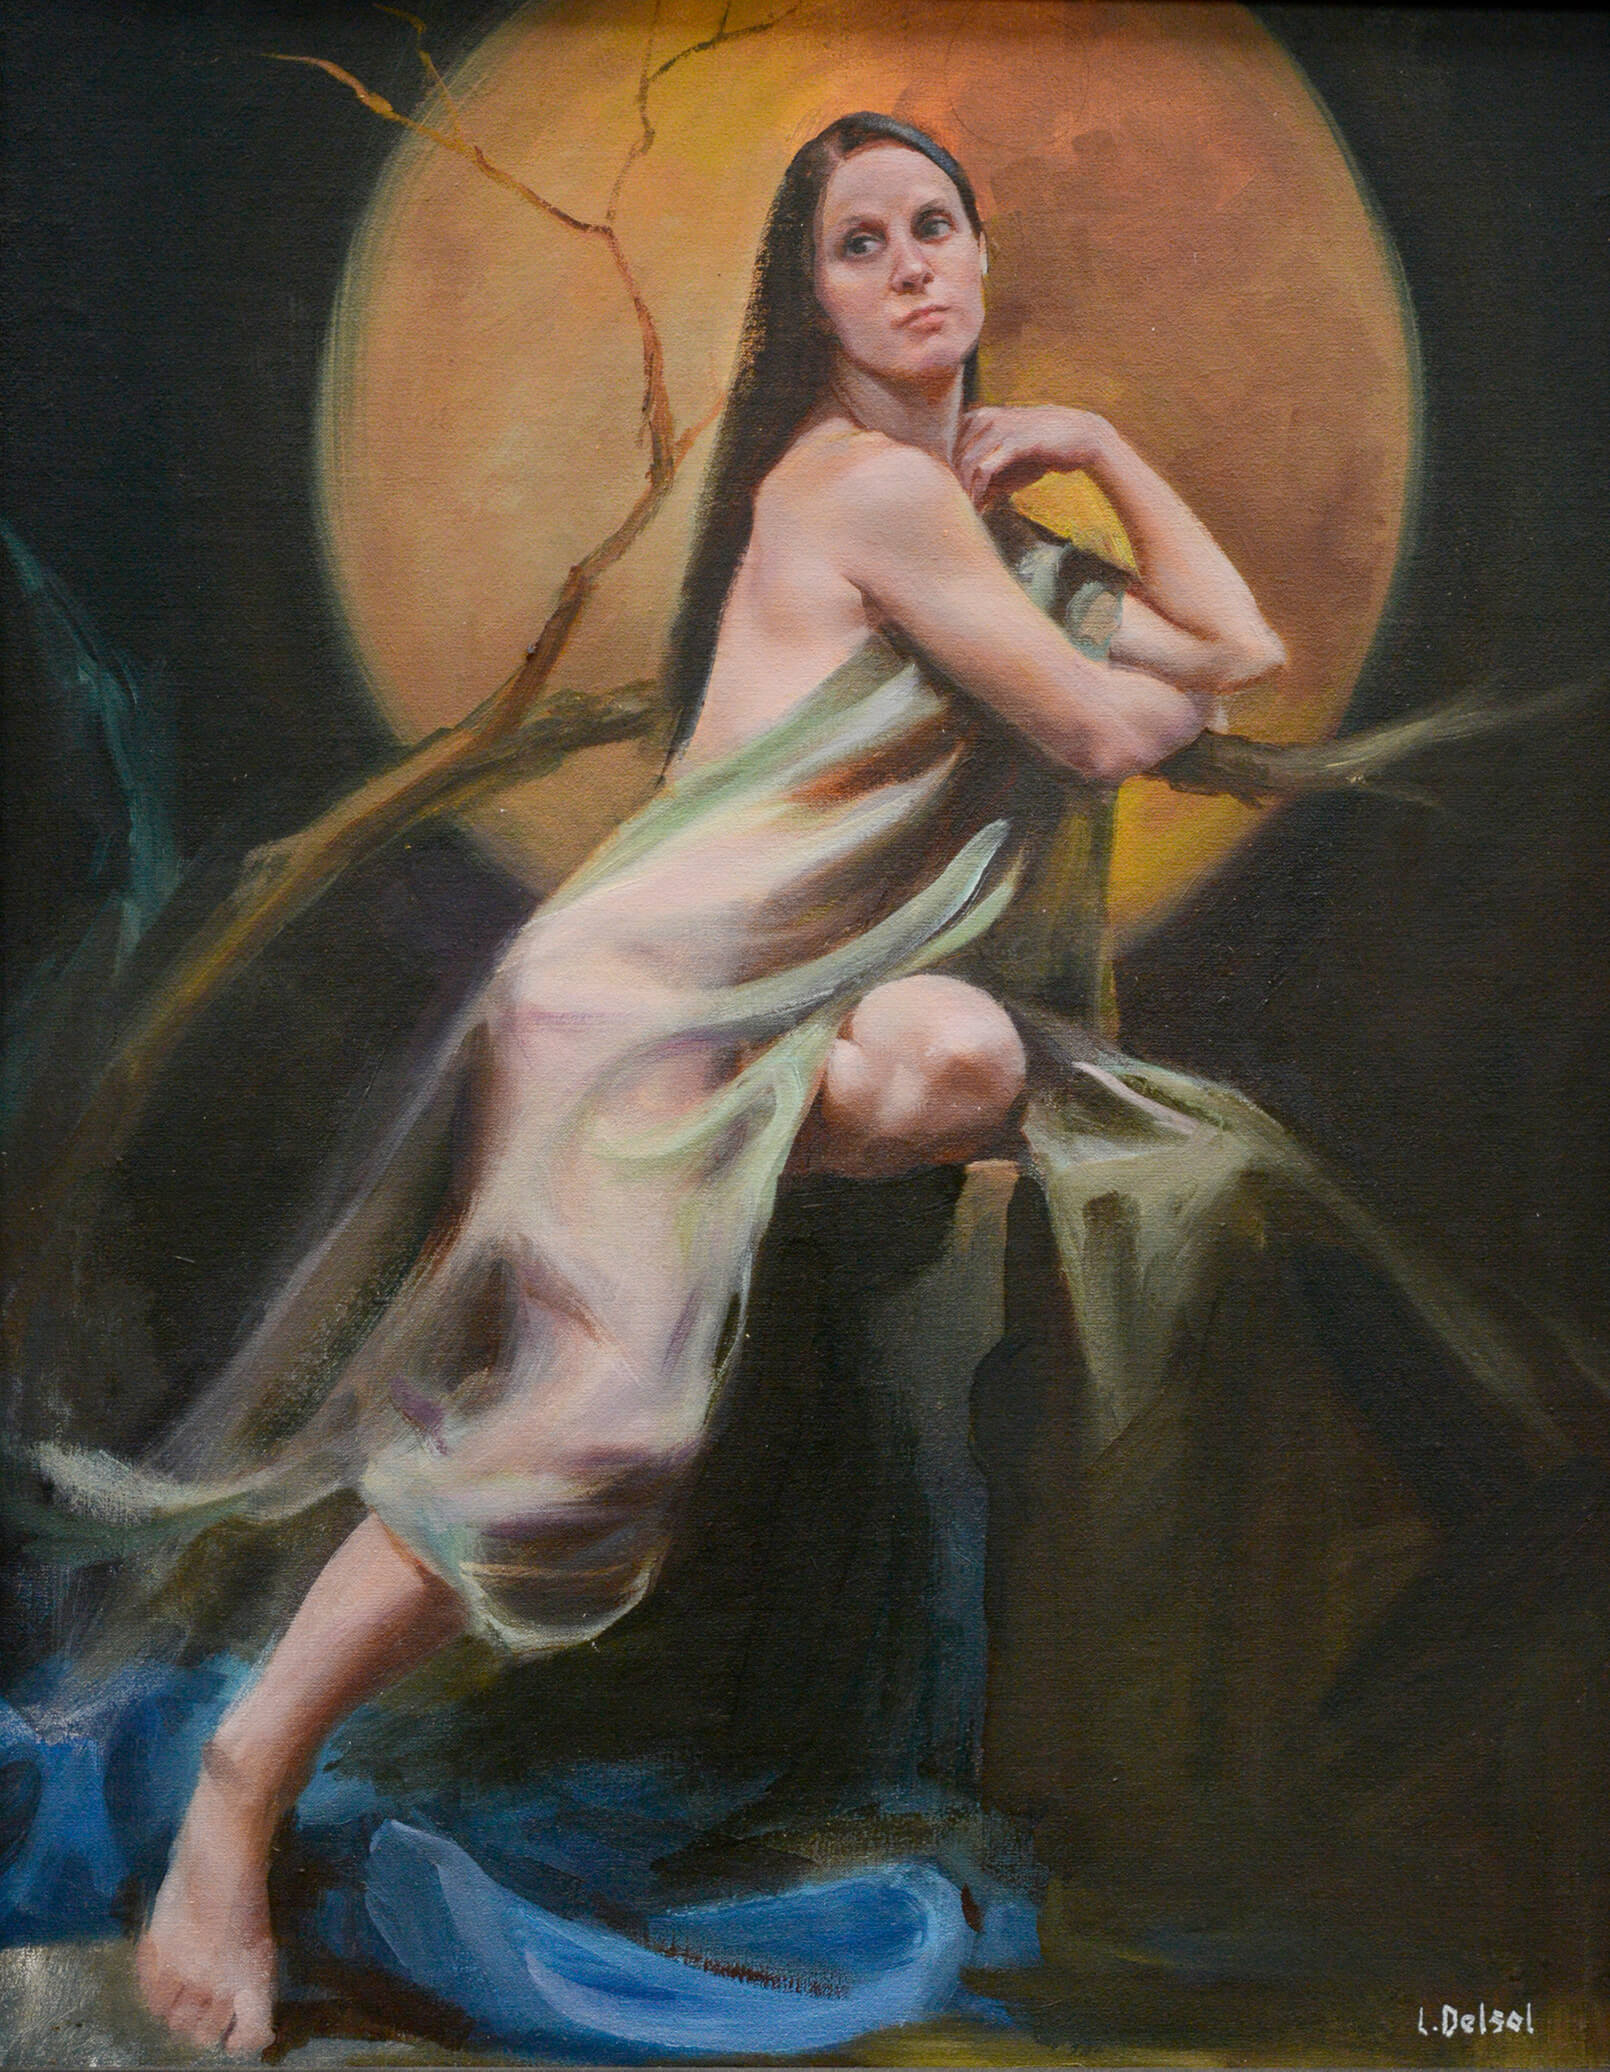 Realistic full figure oil painting of chiffon fabric draped woman leaning on a tree branch framed by a harvest moon